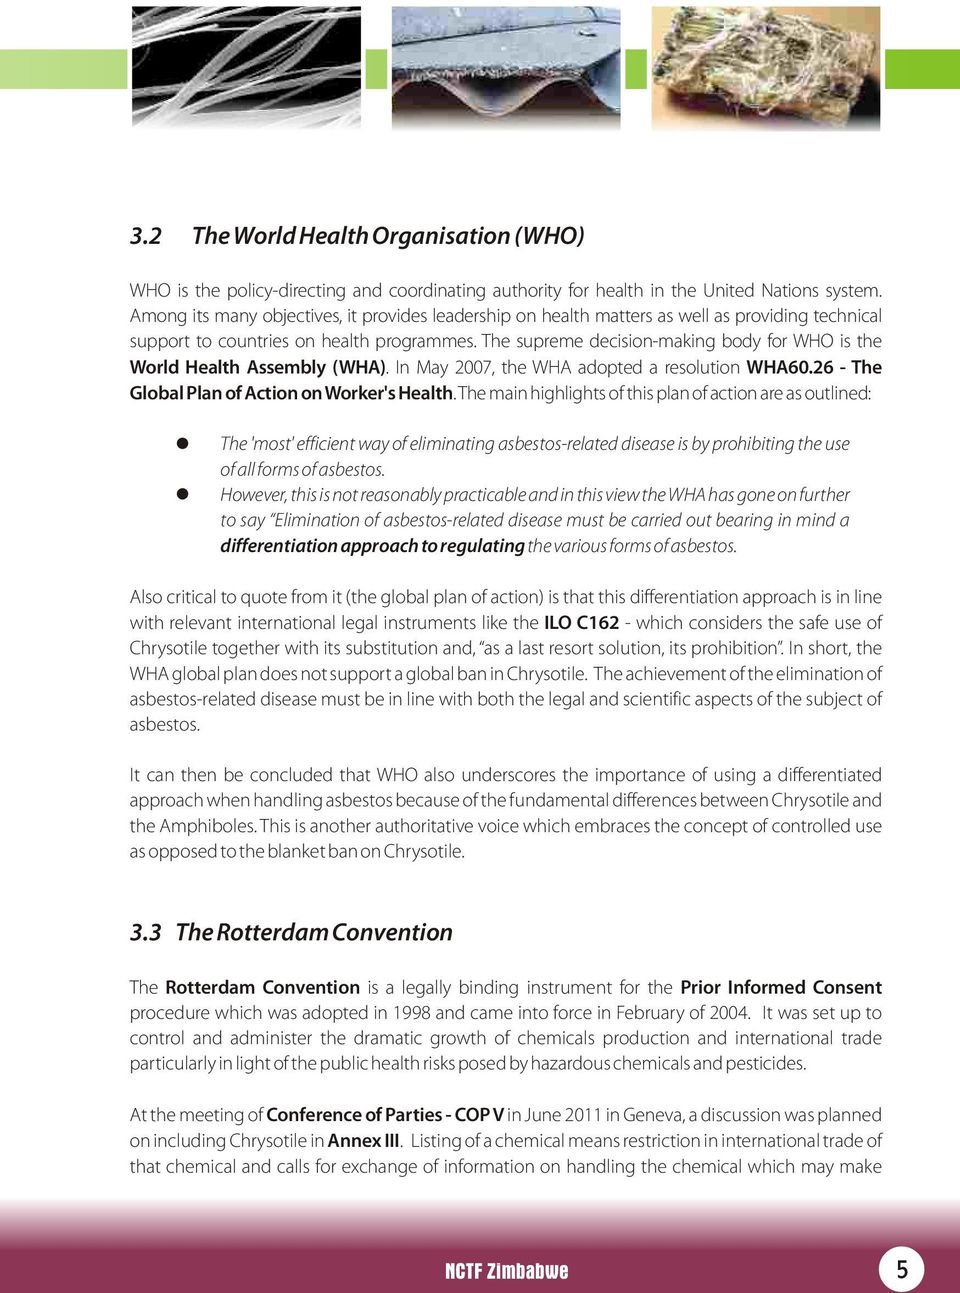 The supreme decision-making body for WHO is the World Health Assembly (WHA). In May 2007, the WHA adopted a resolution WHA60.26 - The Global Plan of Action on Worker's Health.